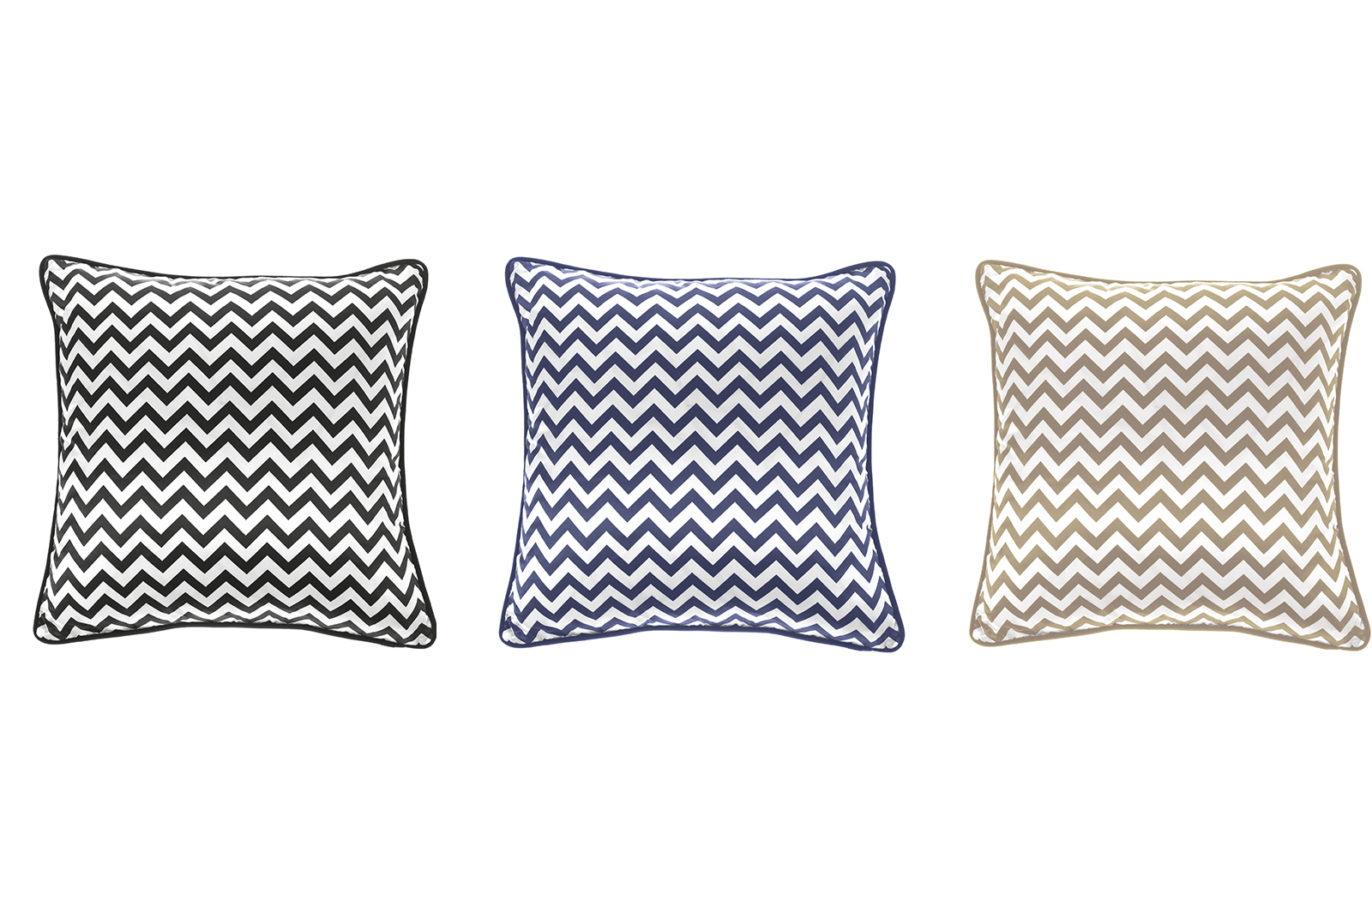 Gianfranco Ferre Home Chevron Cushion 02